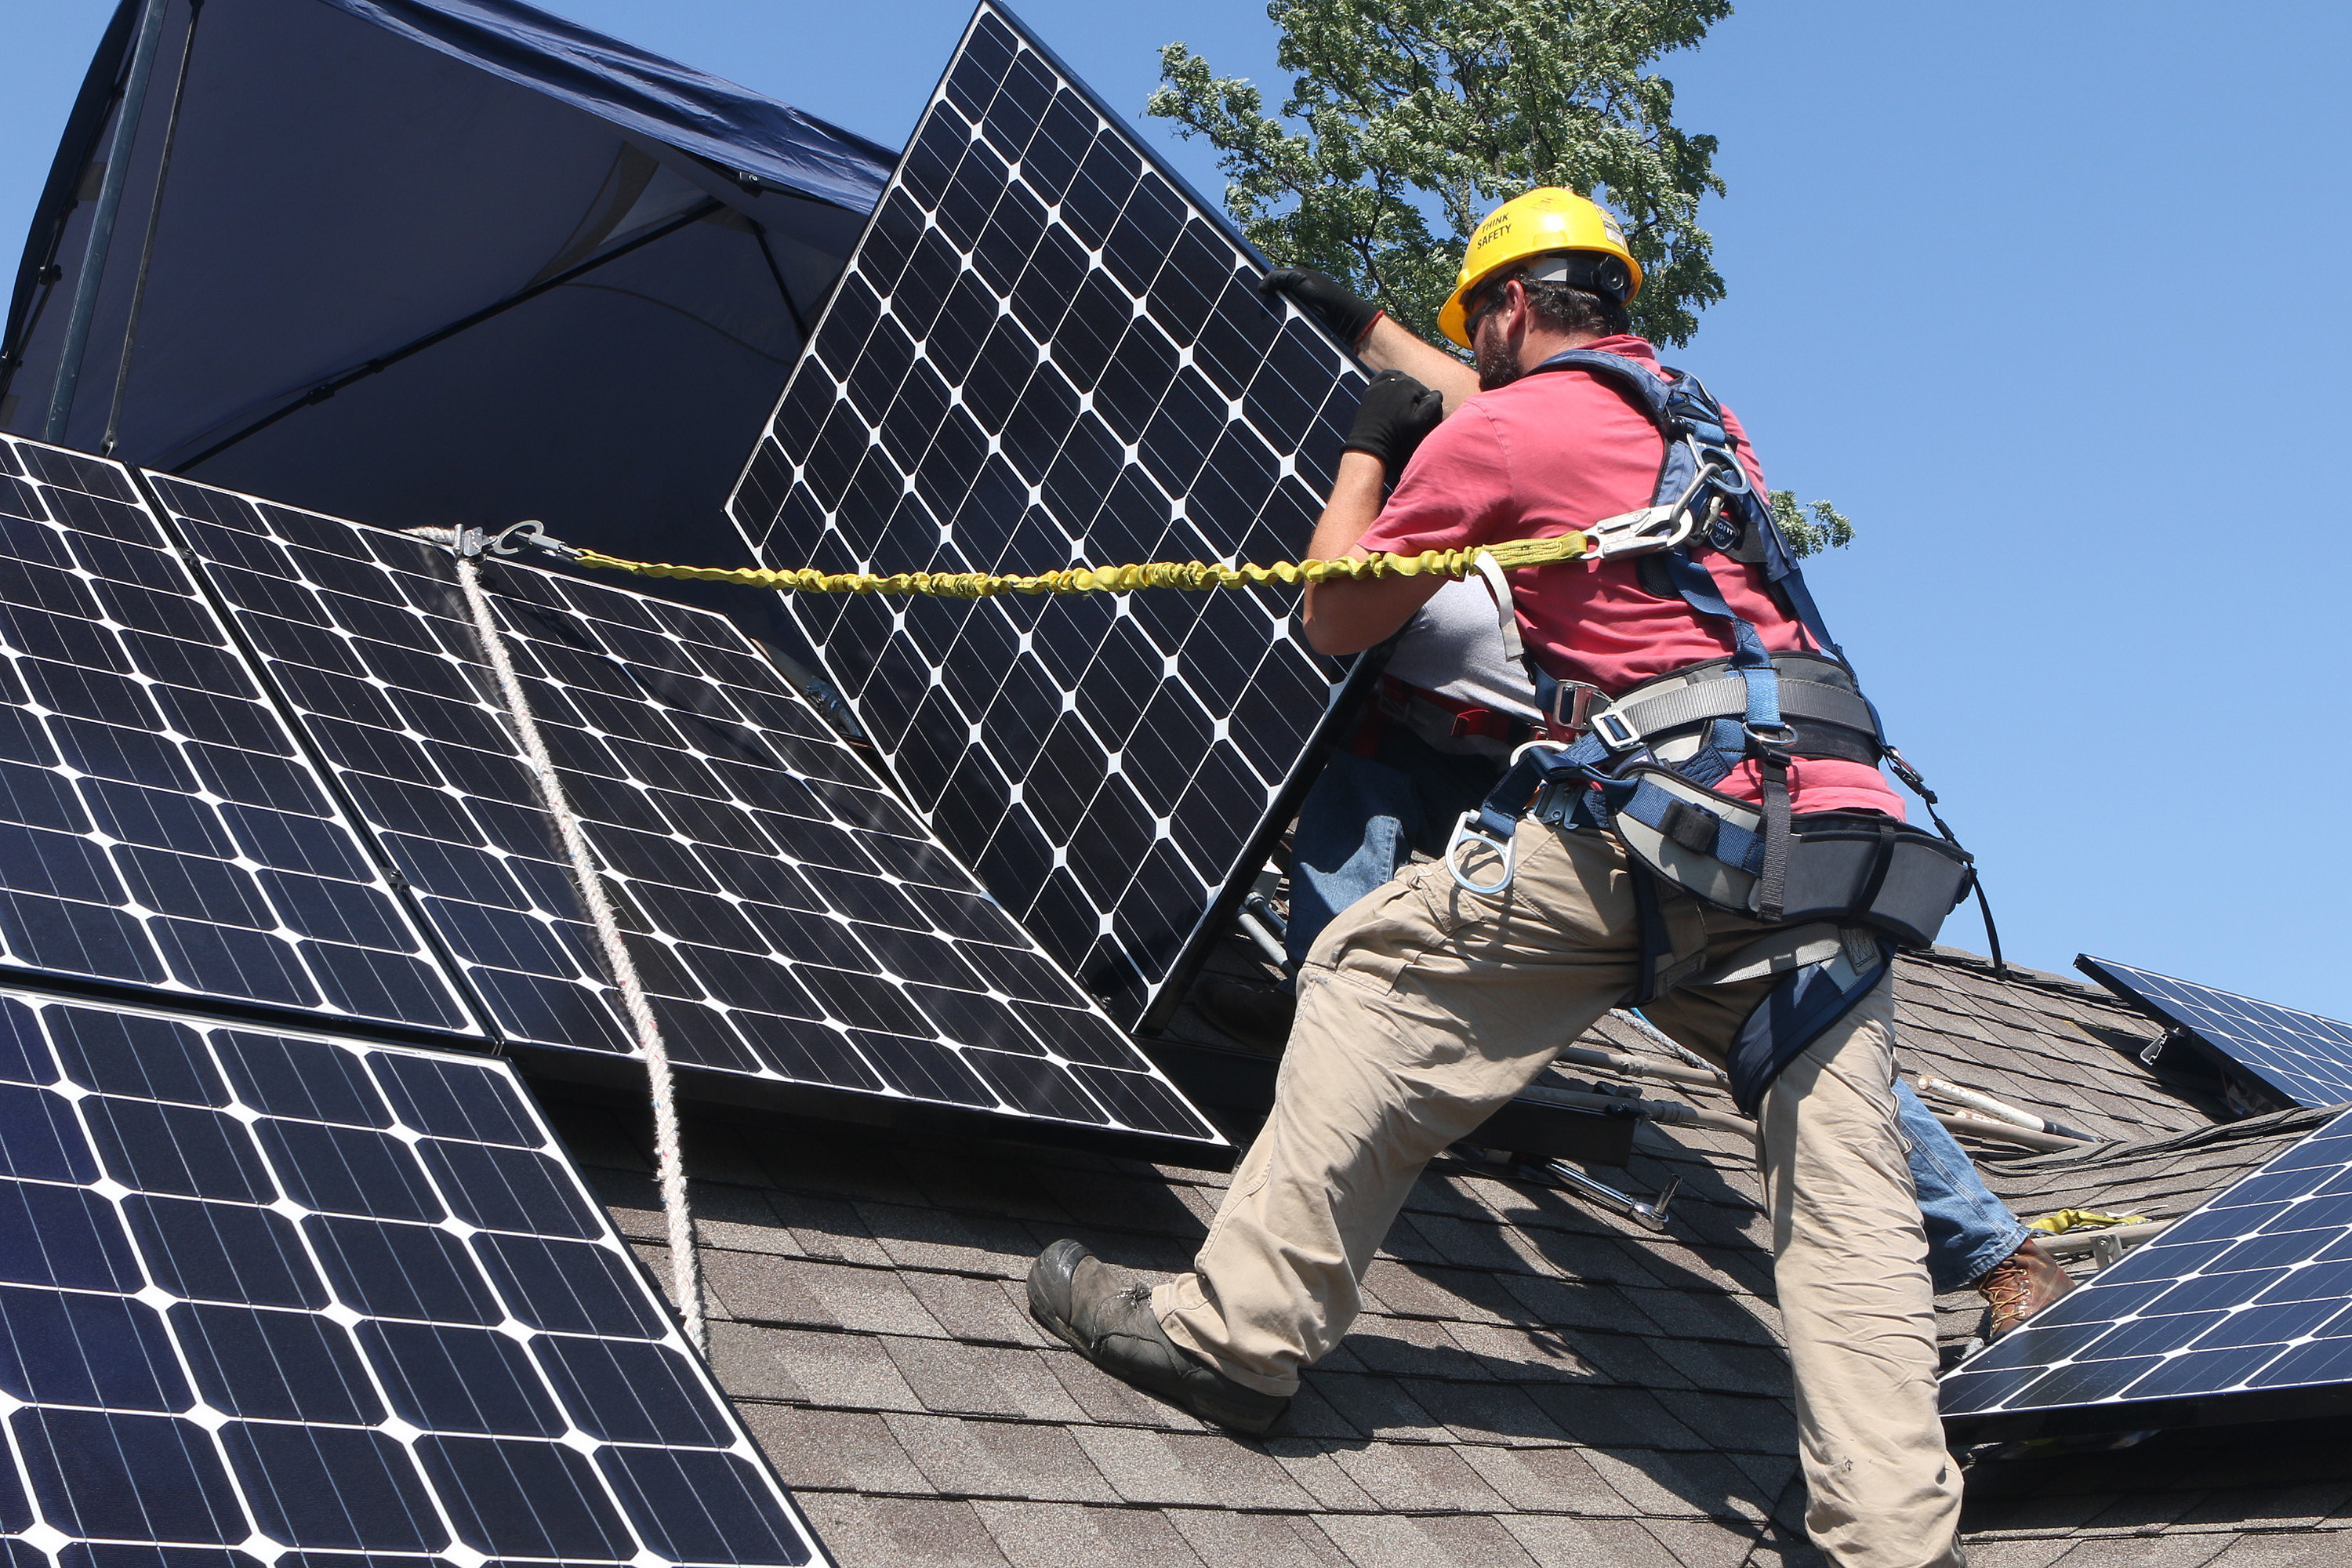 Workers Stephen Janota, left, and Matt Bart, install Solar Service Inc. photovoltaic (PV) solar electric panels on the roof of a home in Park Ridge, Illinois, U.S., on Tuesday, Sept. 10, 2013.